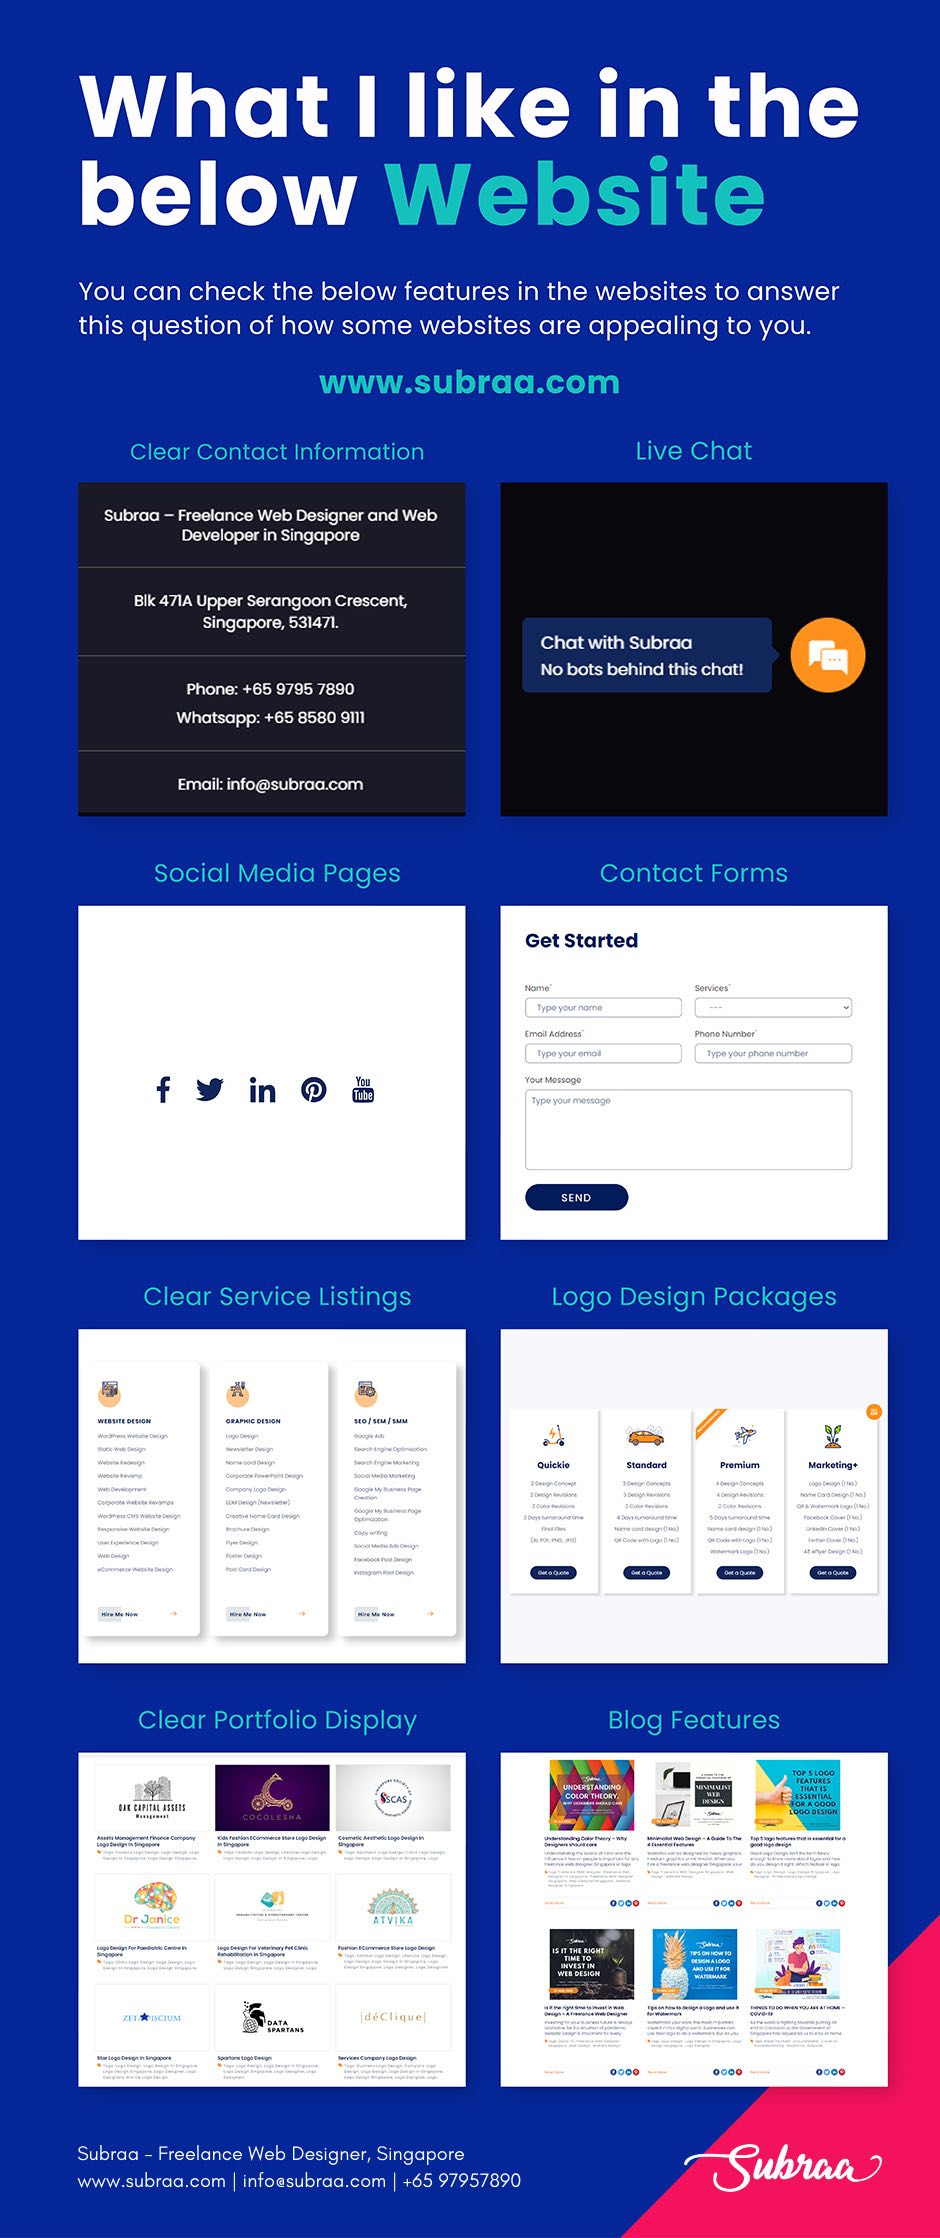 Web Design Features - Subraa, Freelance Web Designer in Singapore